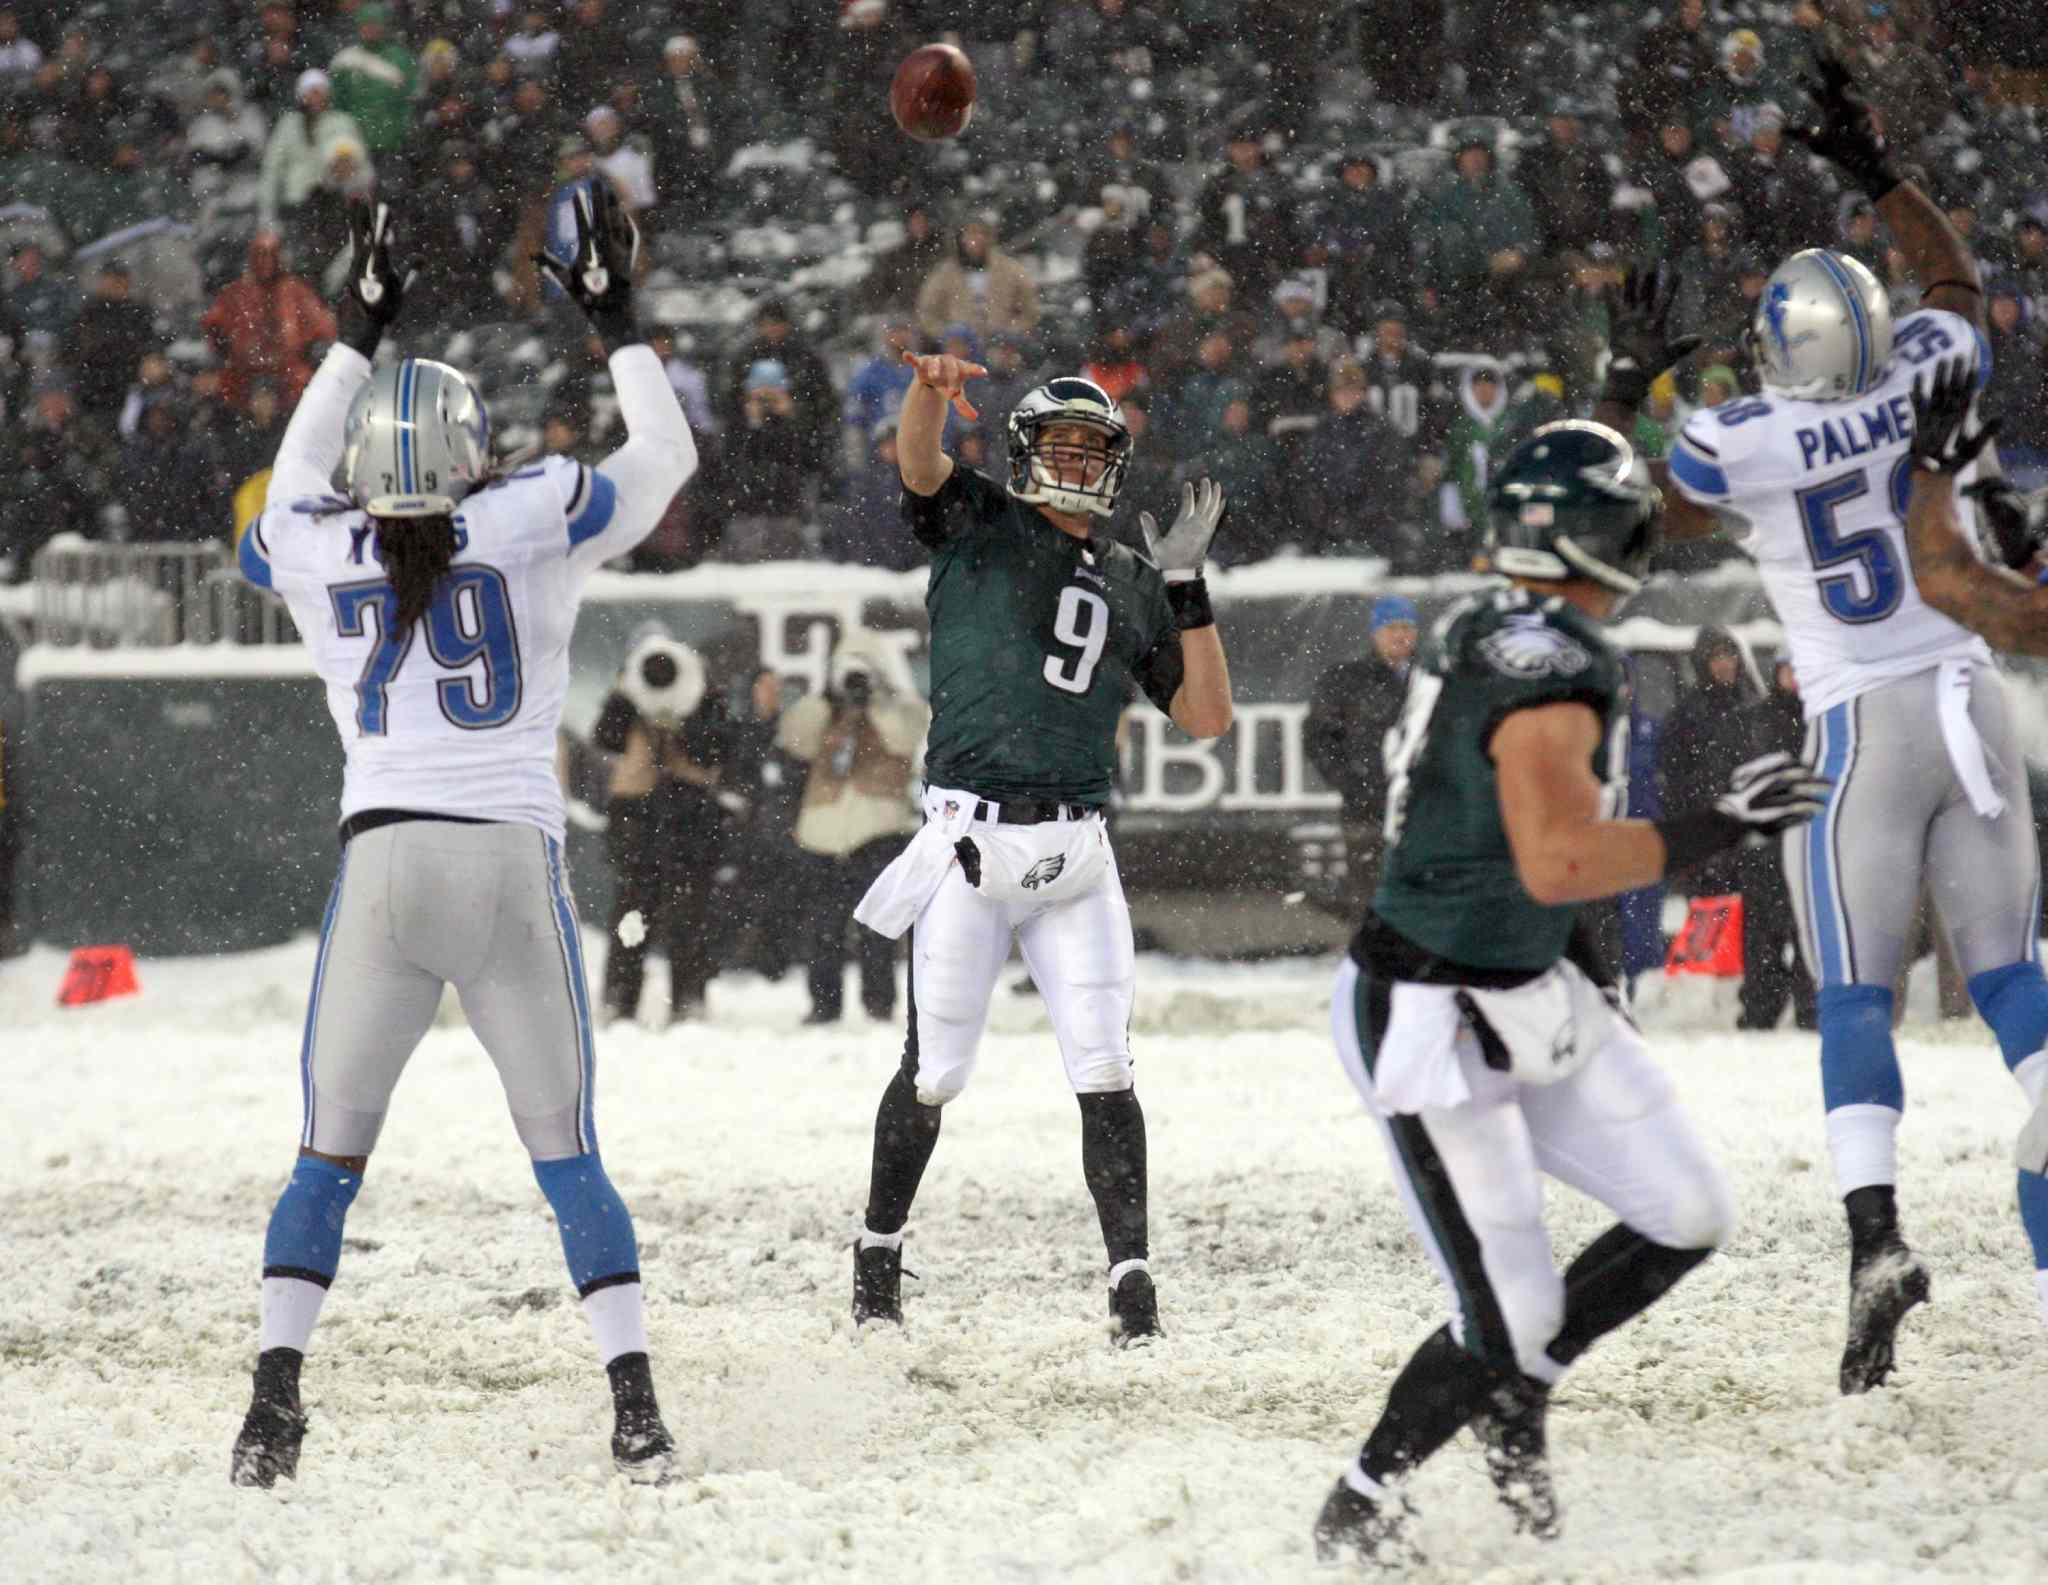 Philadelphia Eagles' Nick Foles (centre) floats the football to Brent Celek (centre right) late in the fourth quarter against the Detroit Lions at Lincoln Financial Field in Philadelphia on Sunday.